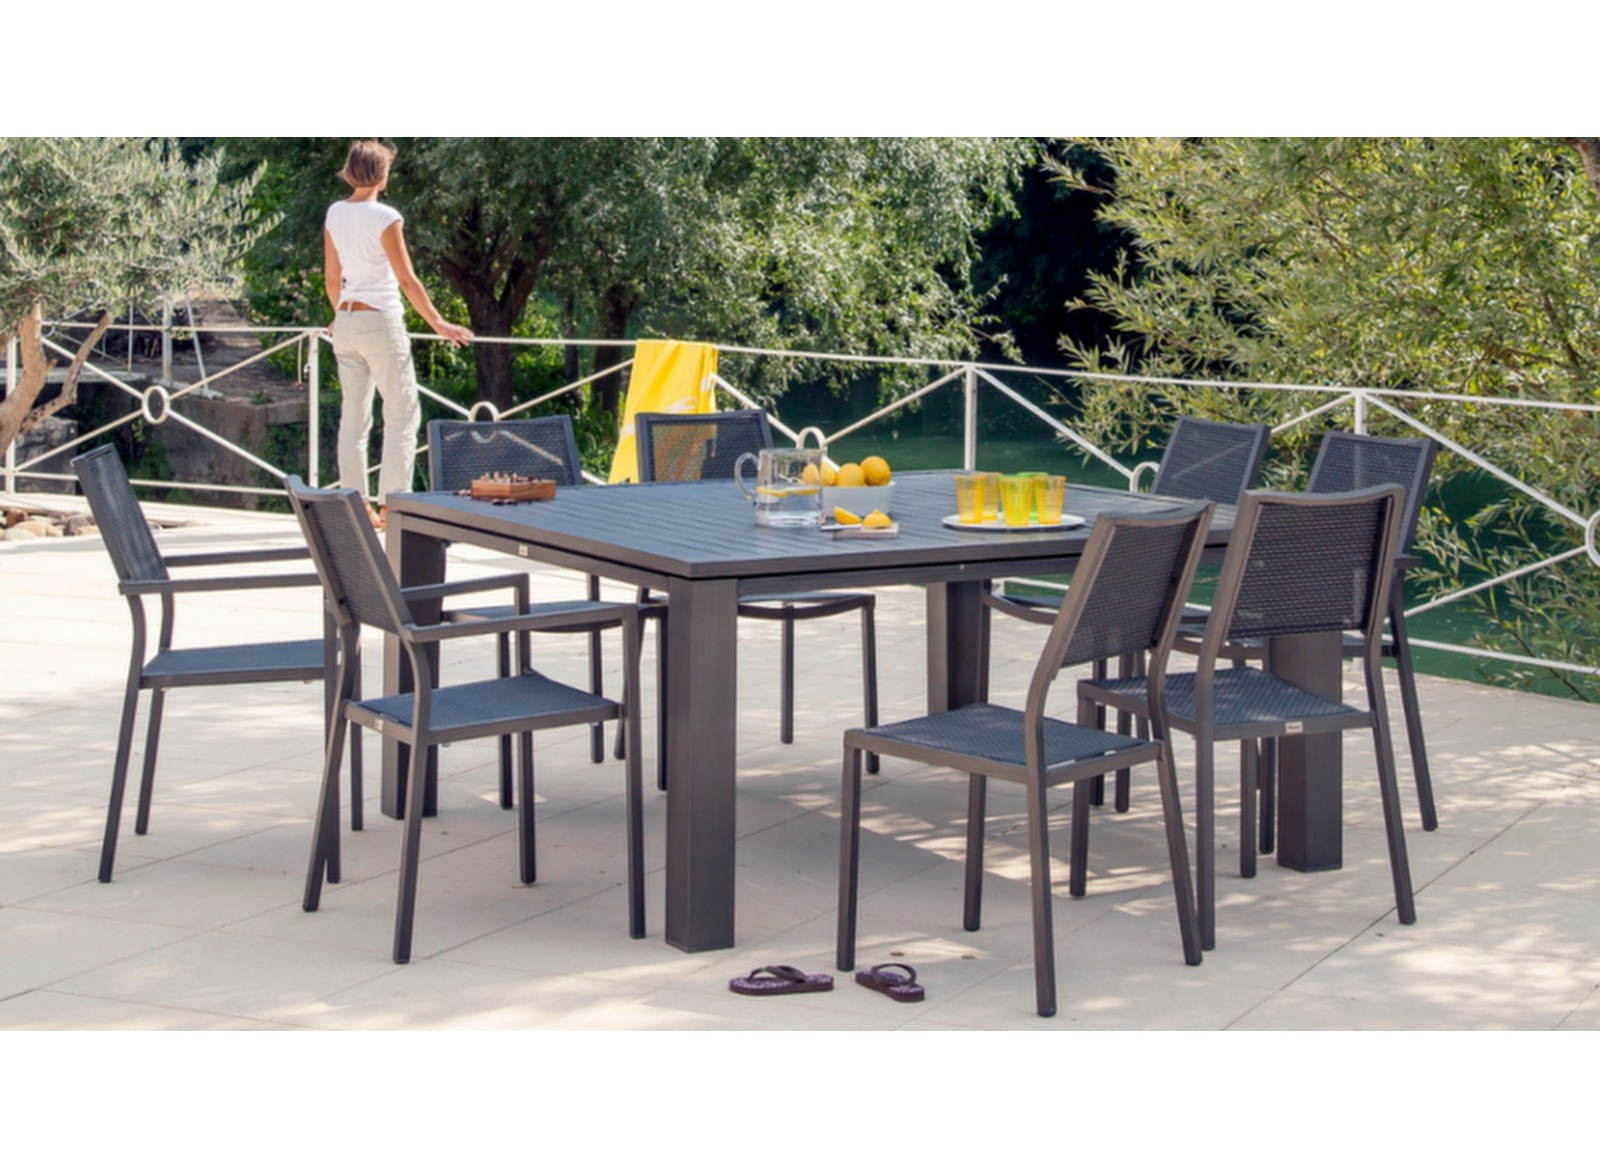 Table Fiero 144x144cm - Meuble de jardin design Proloisirs